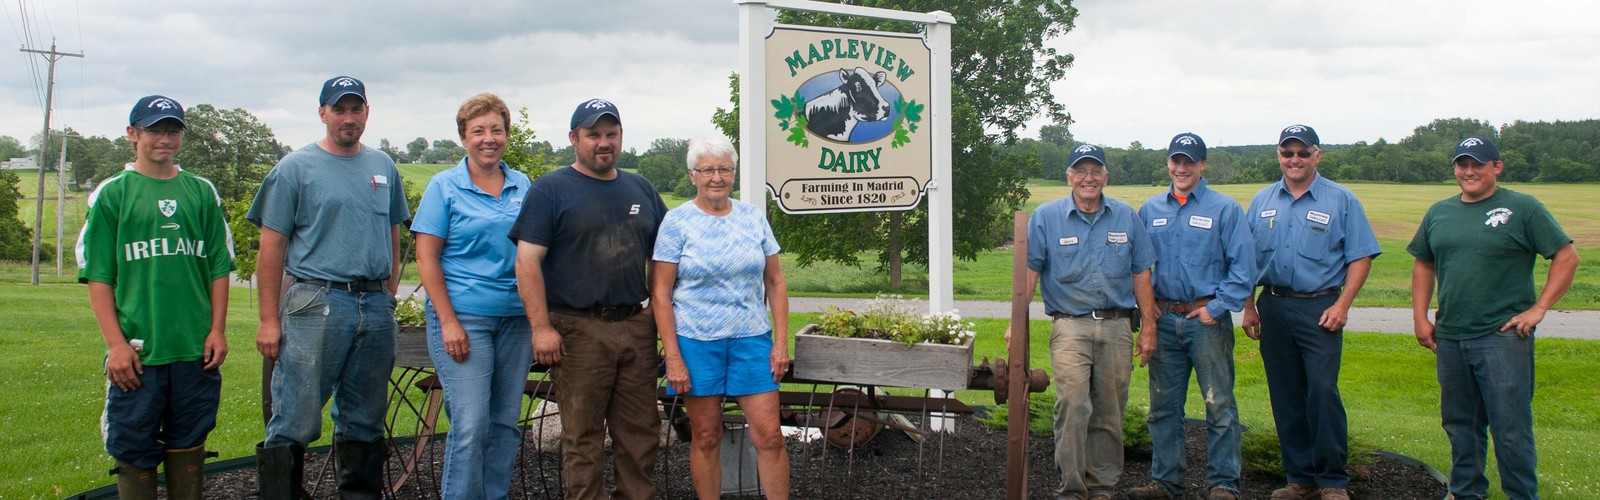 Mapleview Dairy